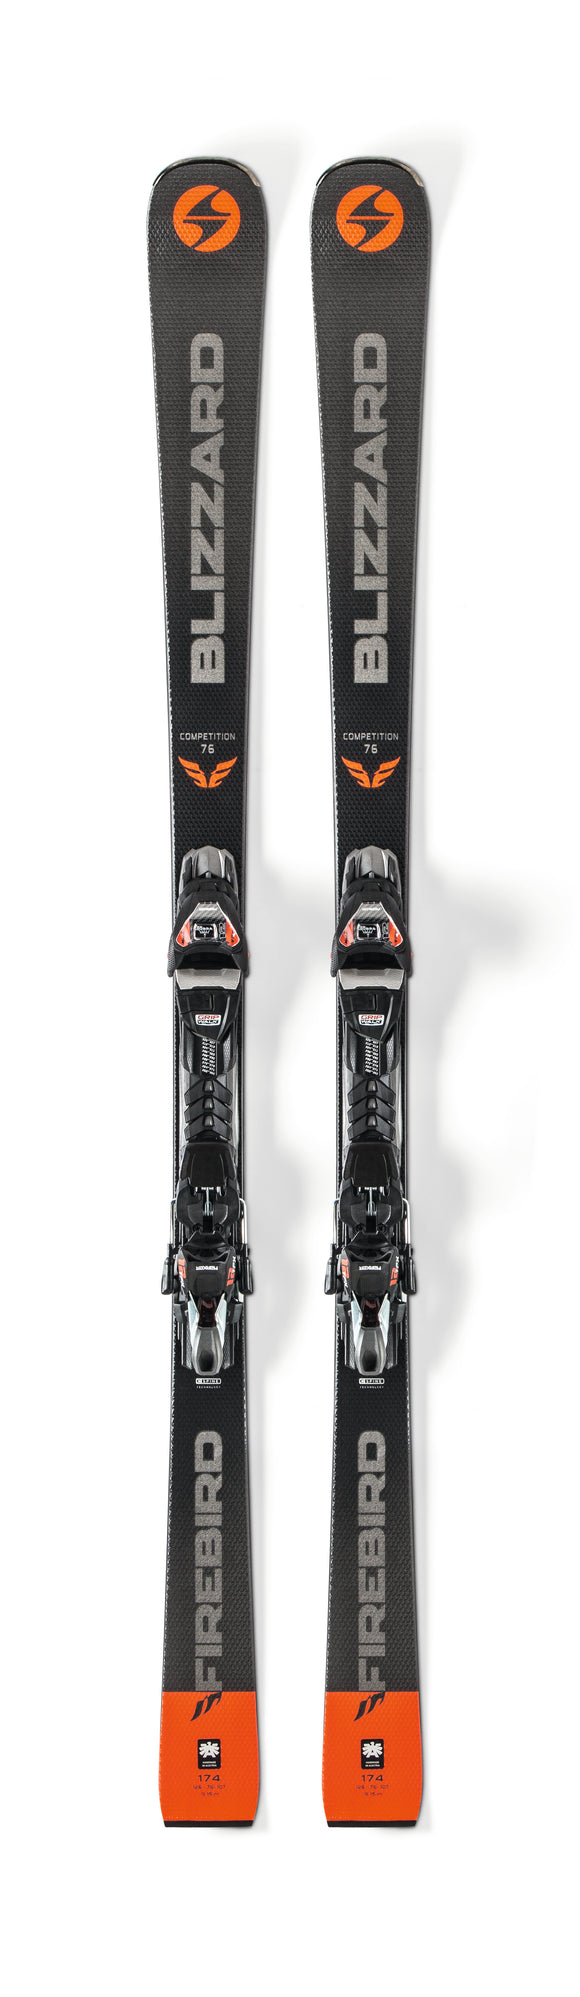 2020 Blizzard Firebird Competition 76 Ti snow skis with bindings - ProSkiGuy your Hometown Ski Shop on the web